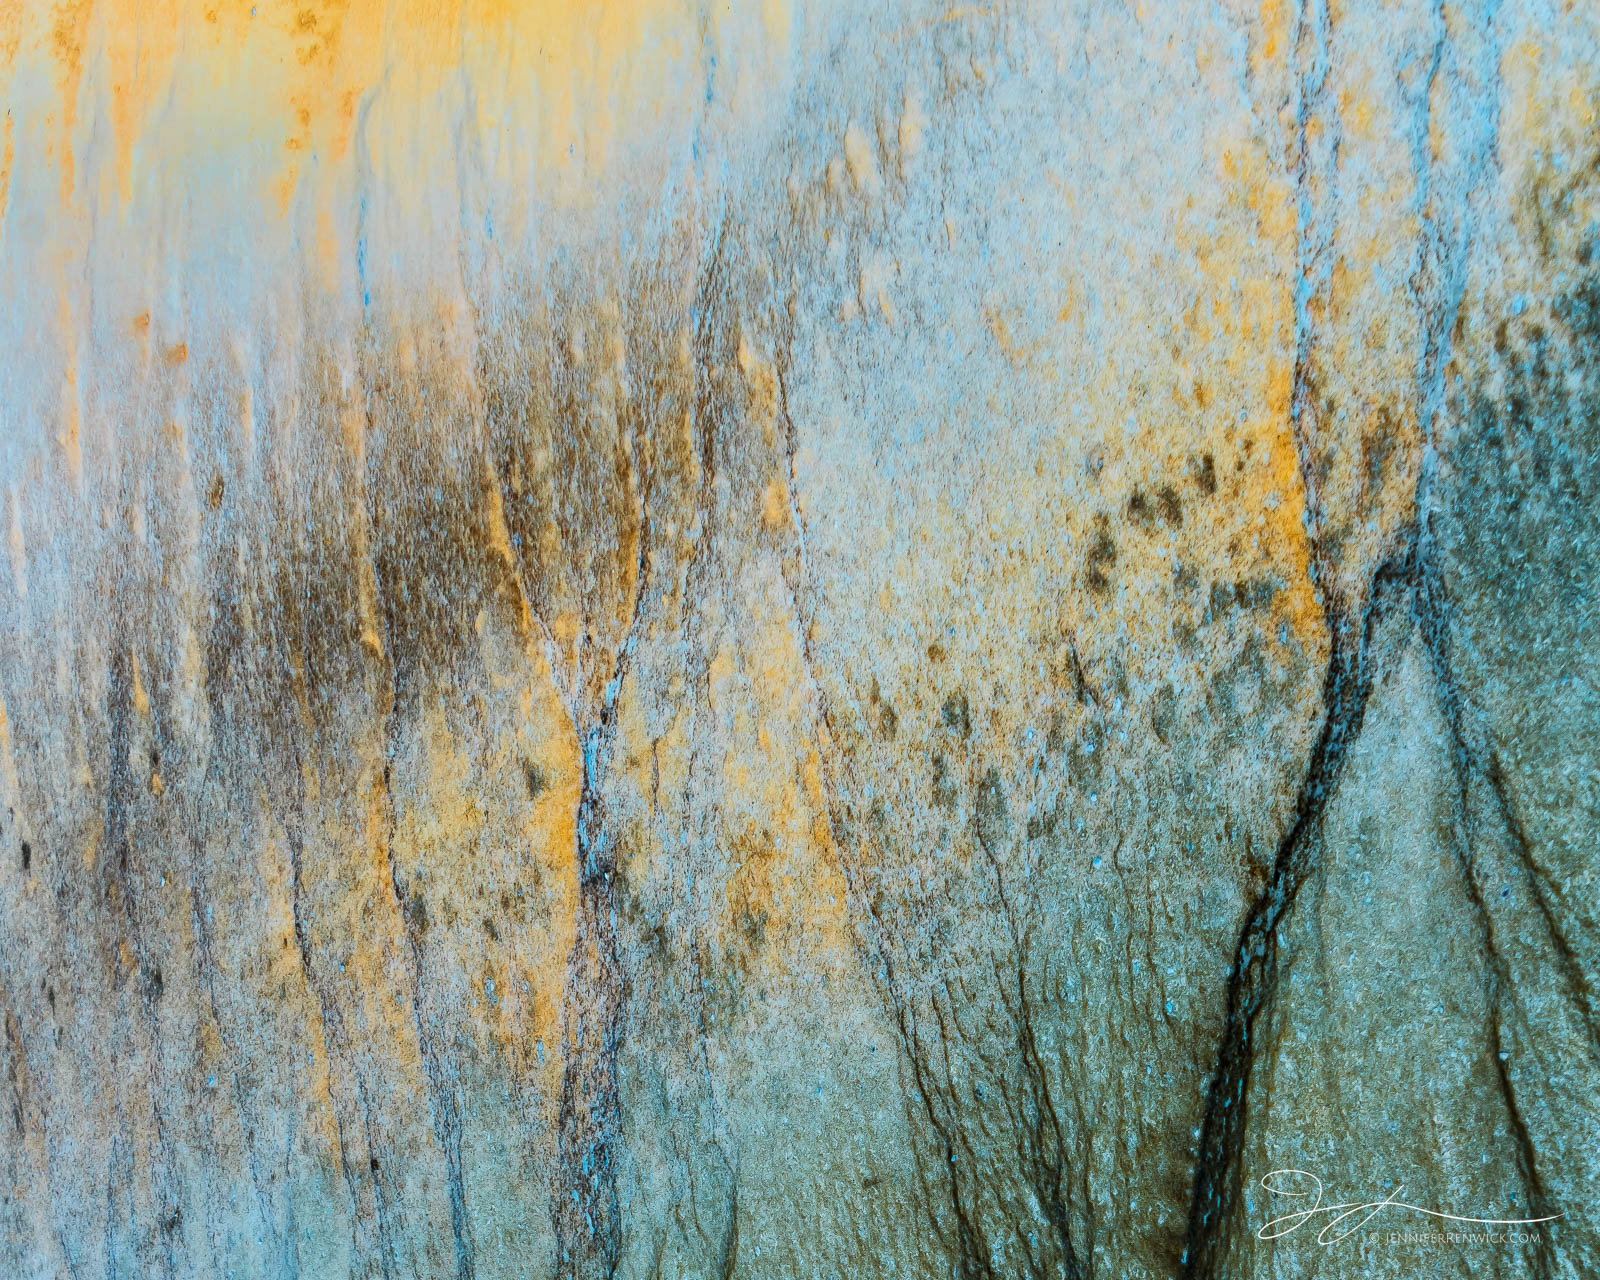 Upper Geyser Basin, Yellowstone national park, abstract photography, bacterial mats, thermophiles, hot spring, Wyoming, thermal feature, grand geyser, photo